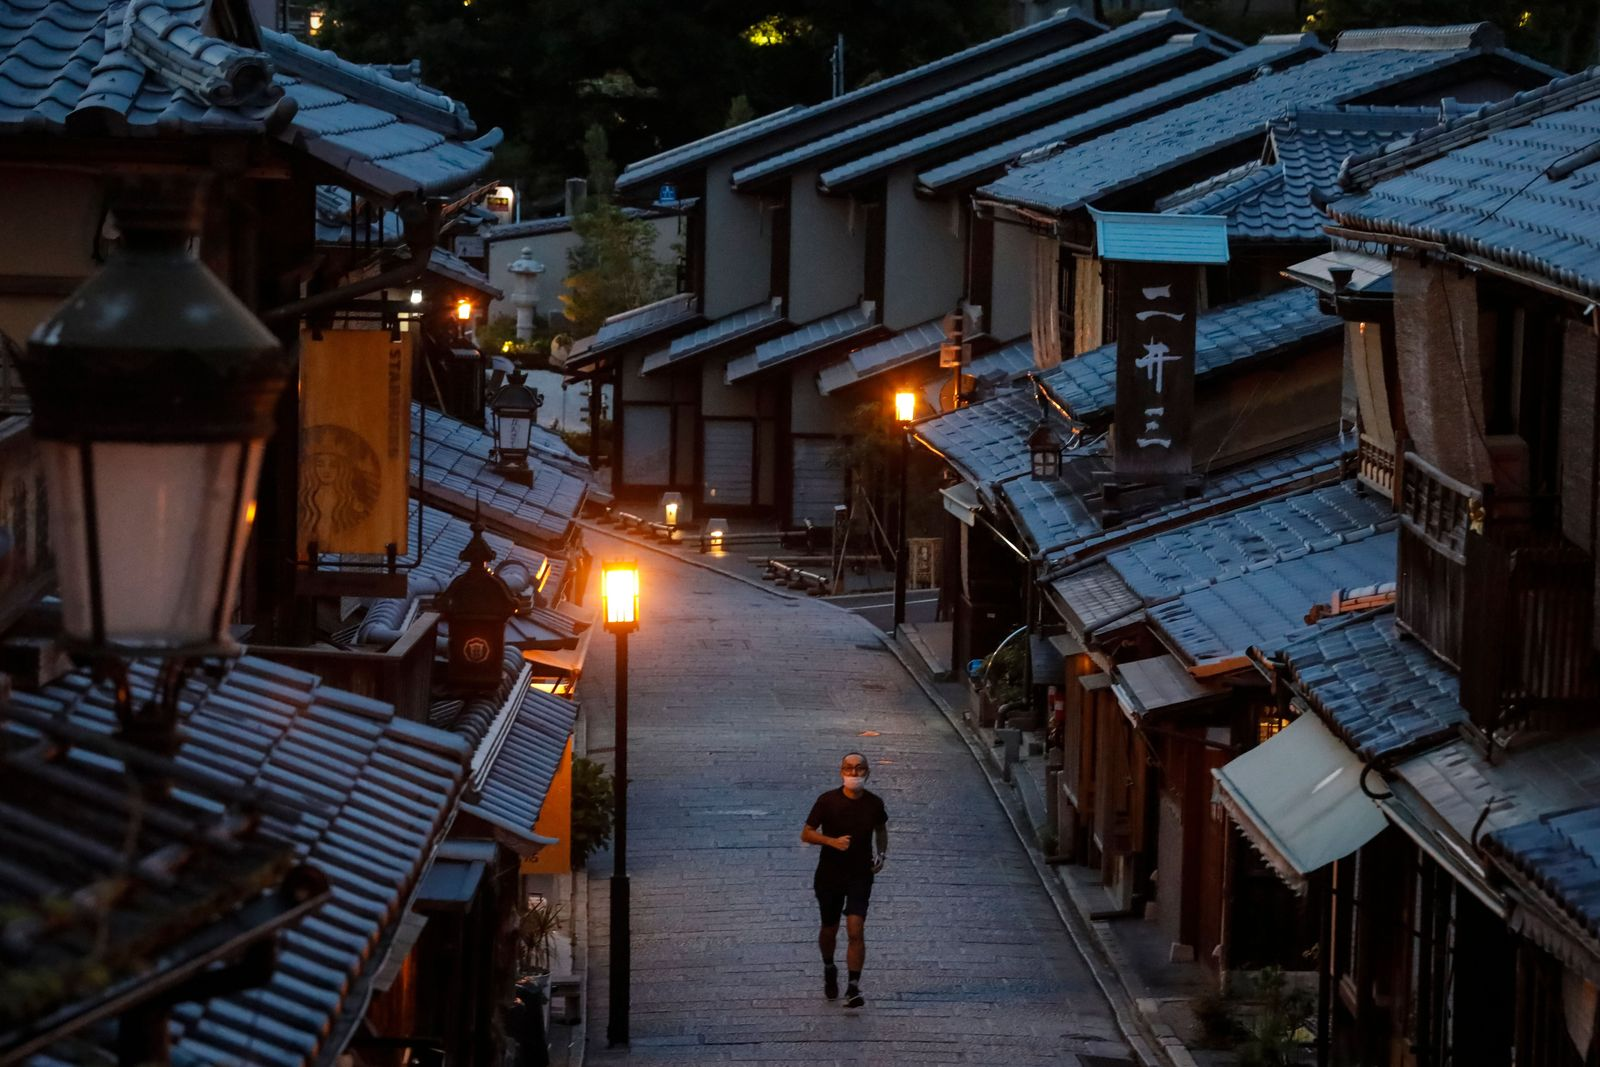 Japan's ancient imperial capital Kyoto temains under state of emergency - 17 May 2020